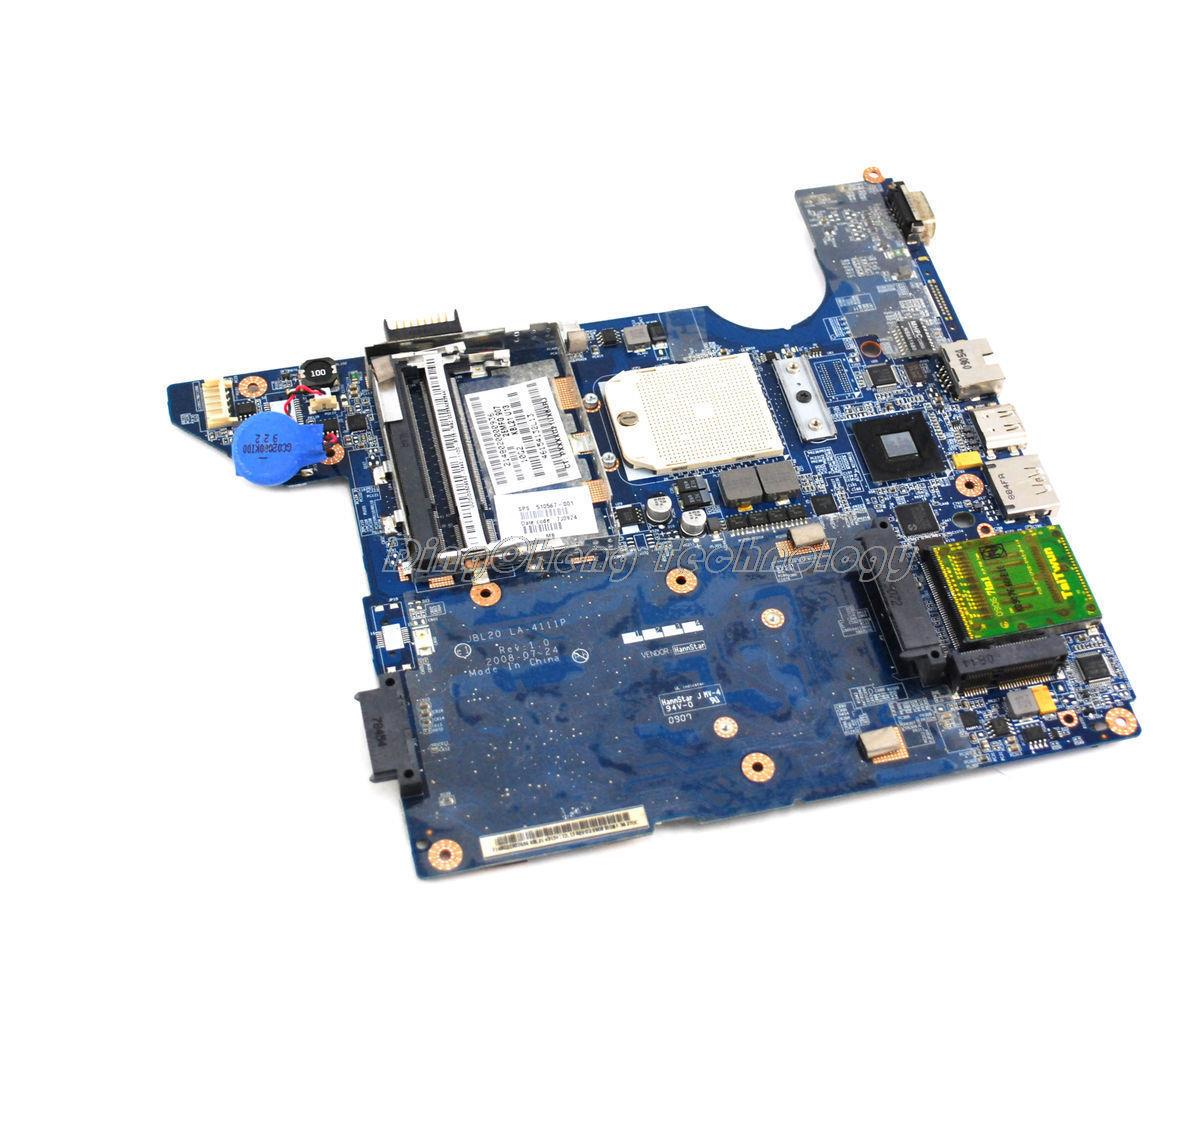 SHELI laptop Motherboard For hp Compaq CQ40 510567-001 JBL20 LA-4111P integrated graphic card 100% tested fully